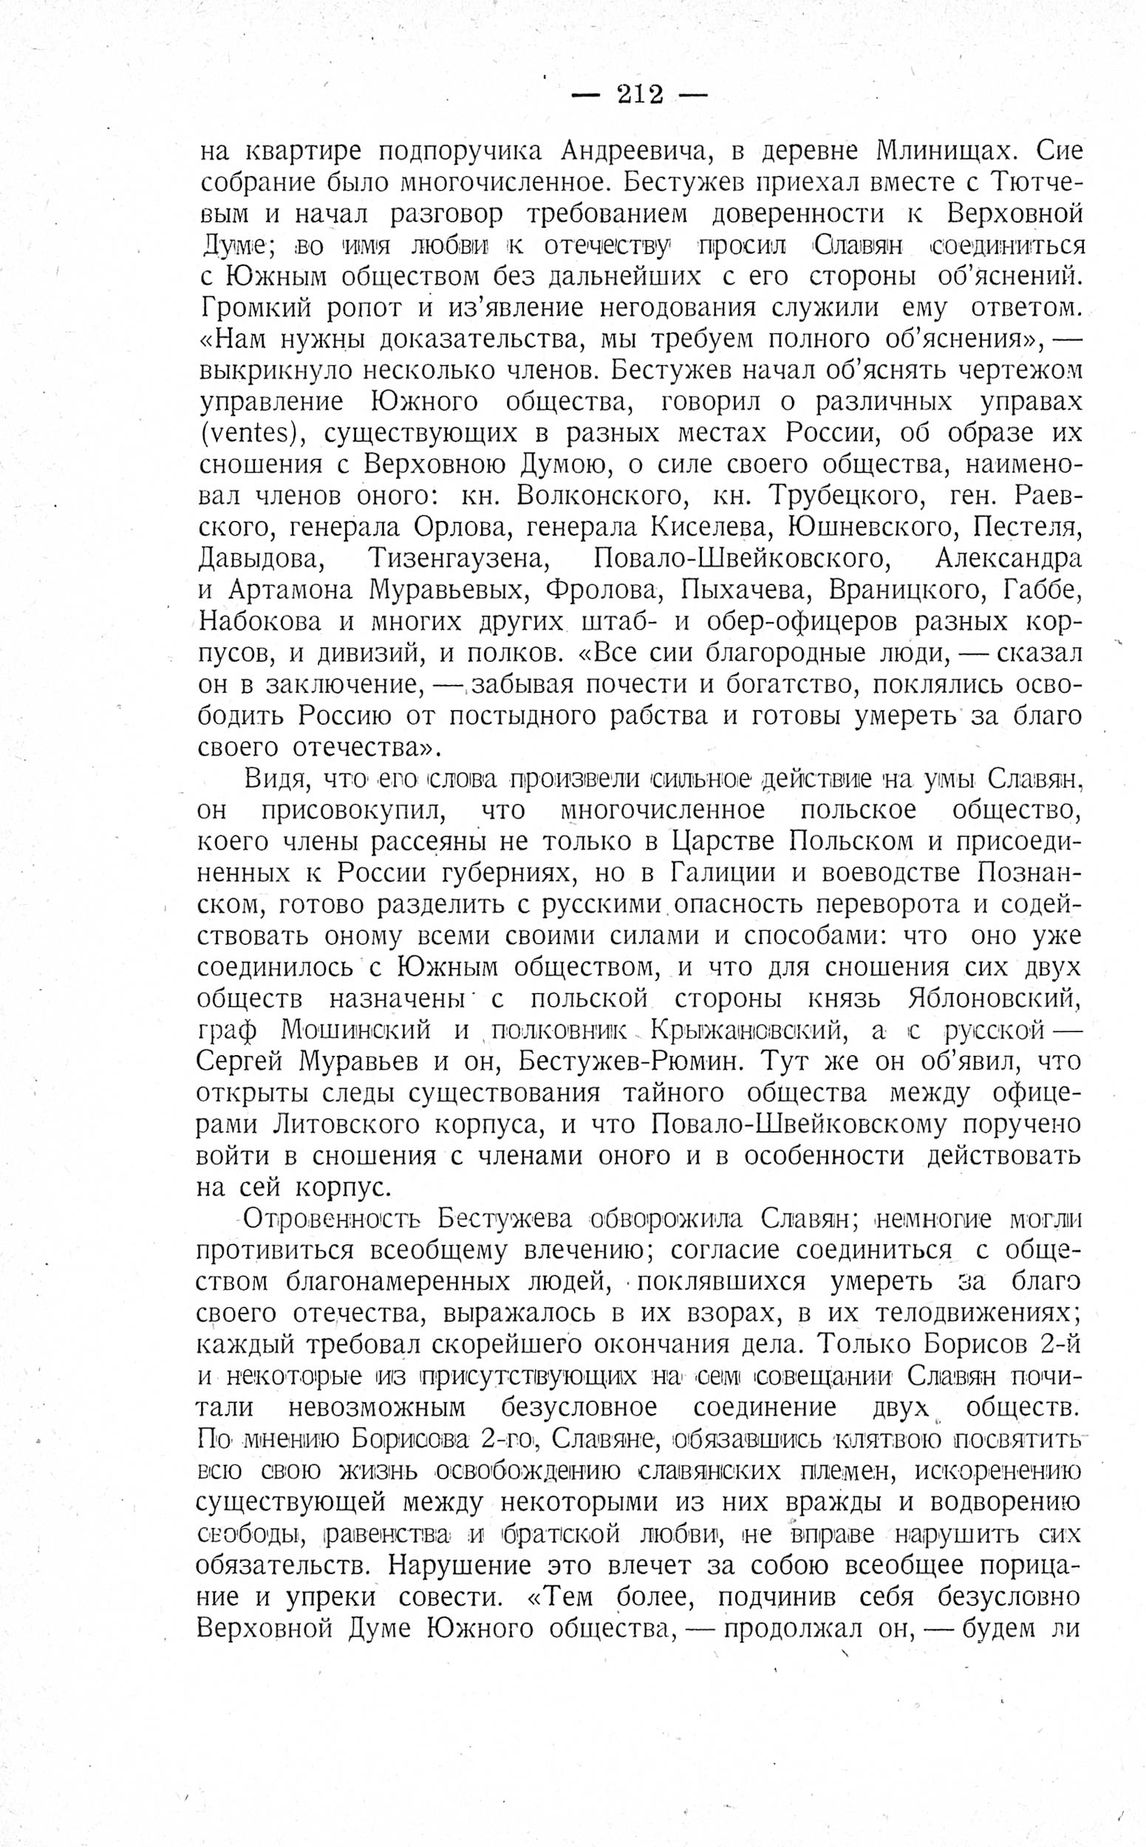 http://elib.shpl.ru/pages/625795/zooms/7